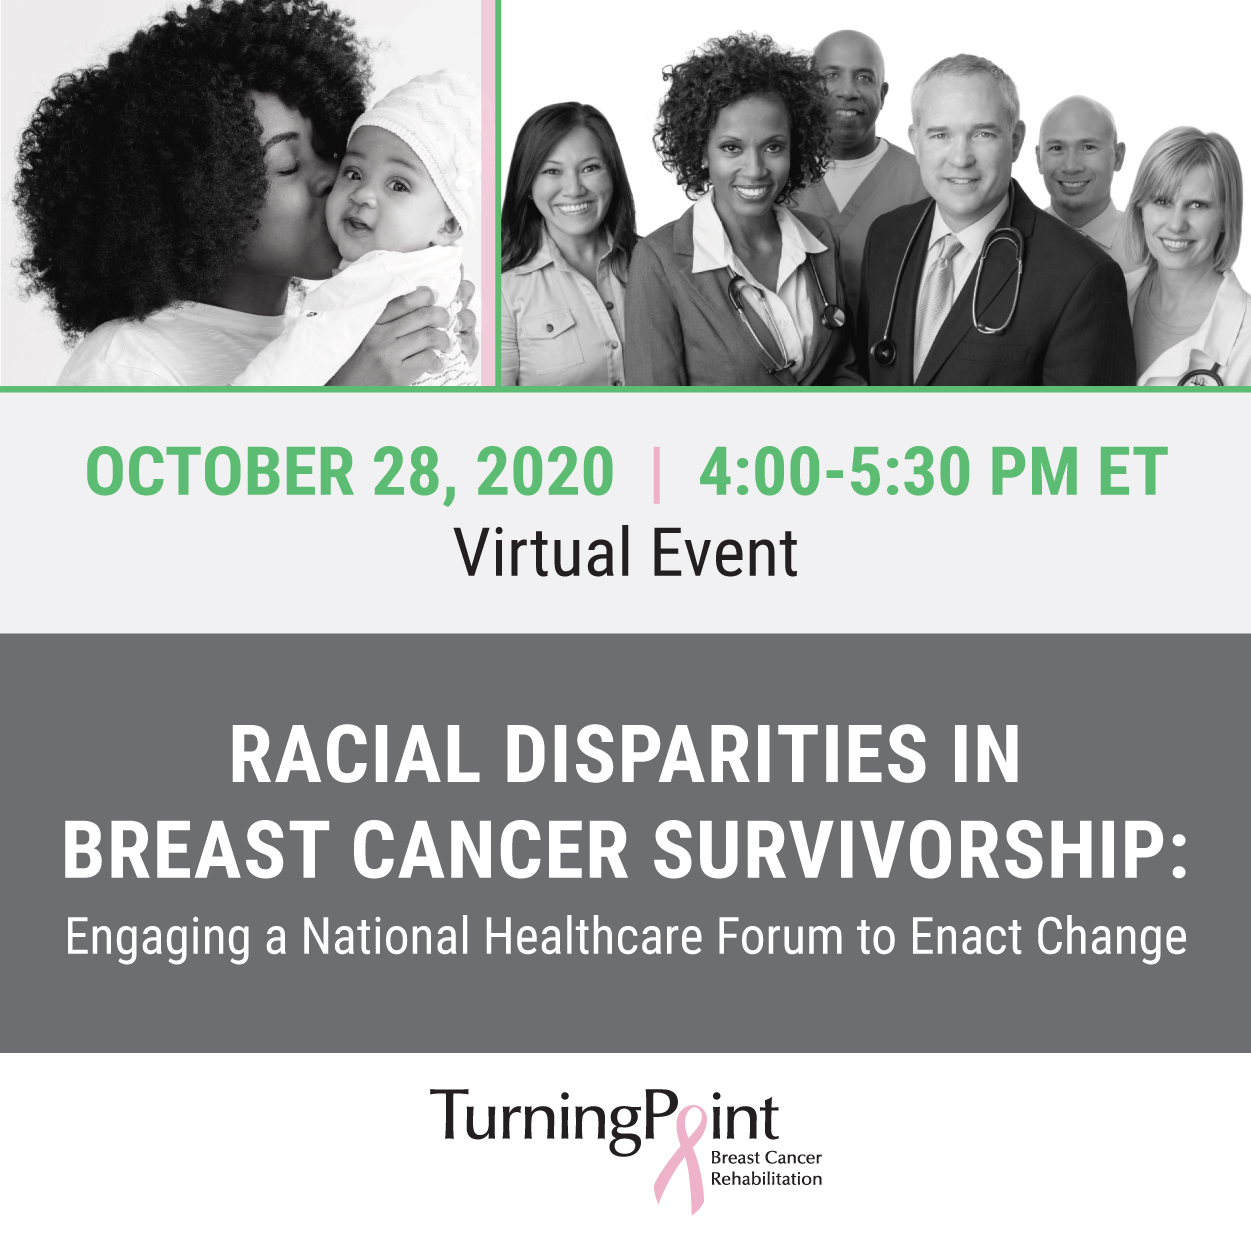 RACIAL DISPARITIES IN BREAST CANCER SURVIVORSHIP: Engaging a National Healthcare Forum for Change